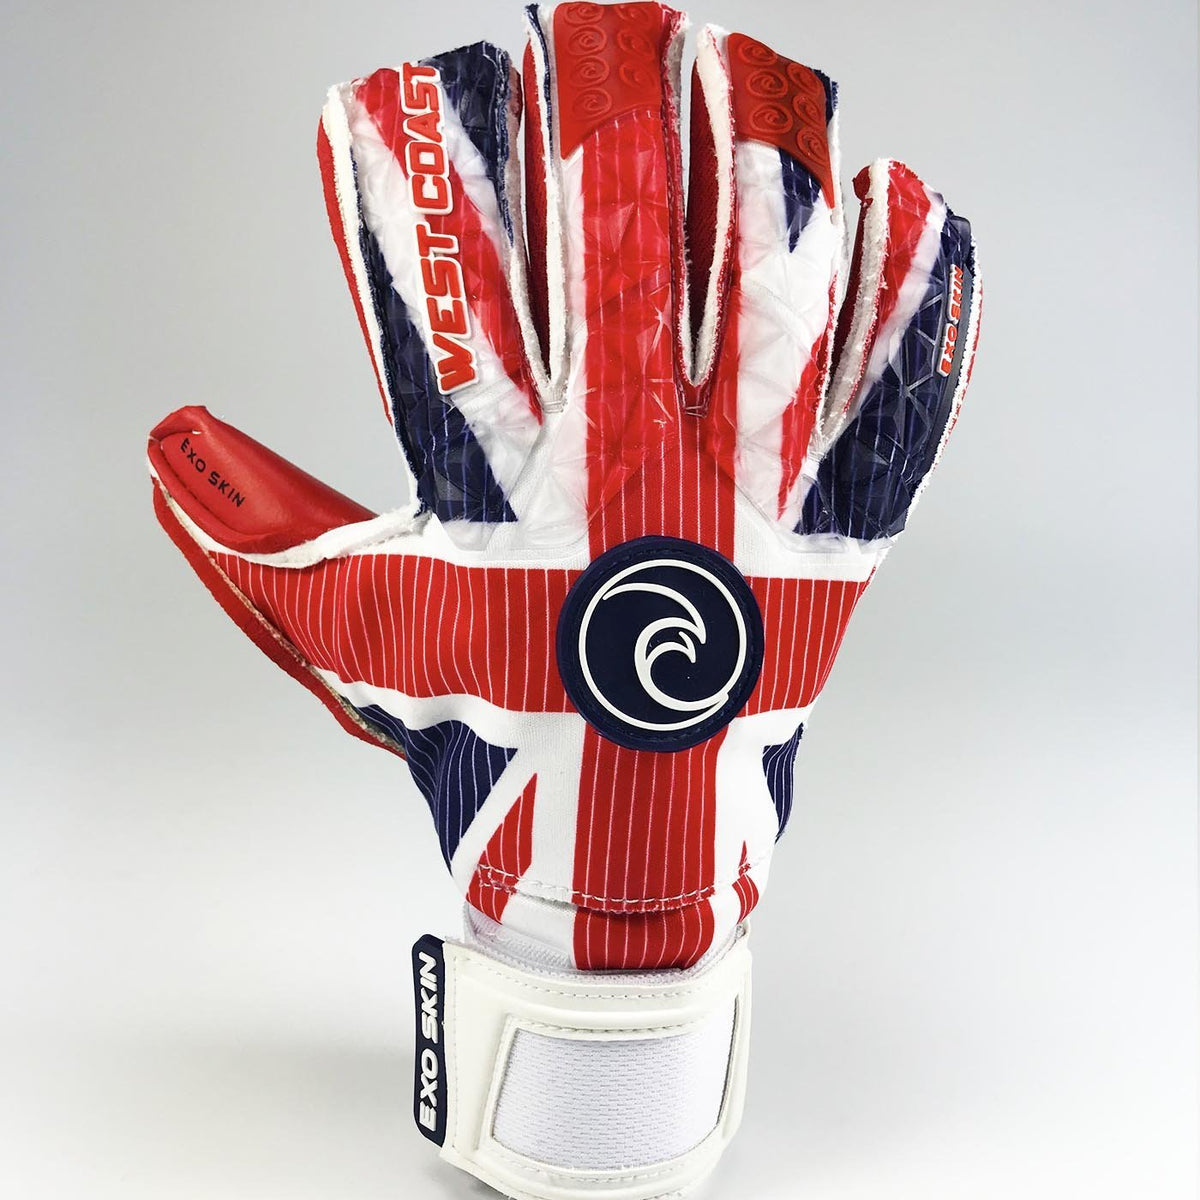 EXO-SKIN Union Jack - West Coast Goalkeeping